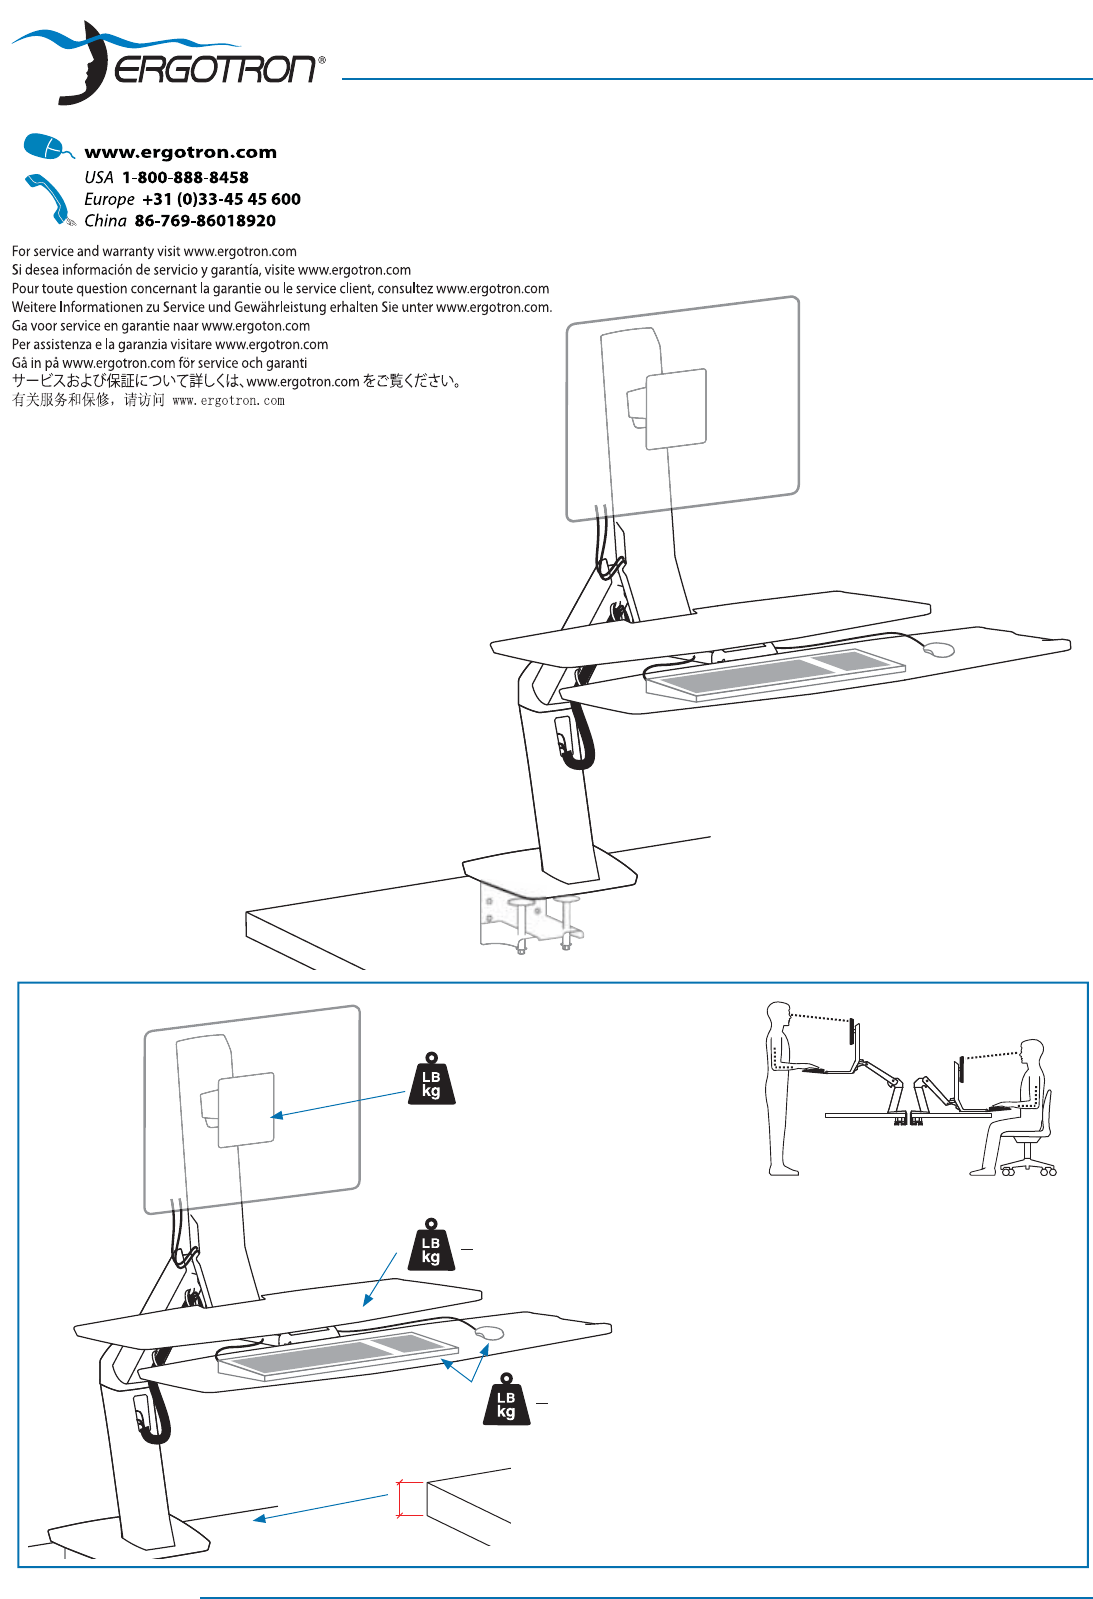 User manual Ergotron WorkFit-A (11 pages)